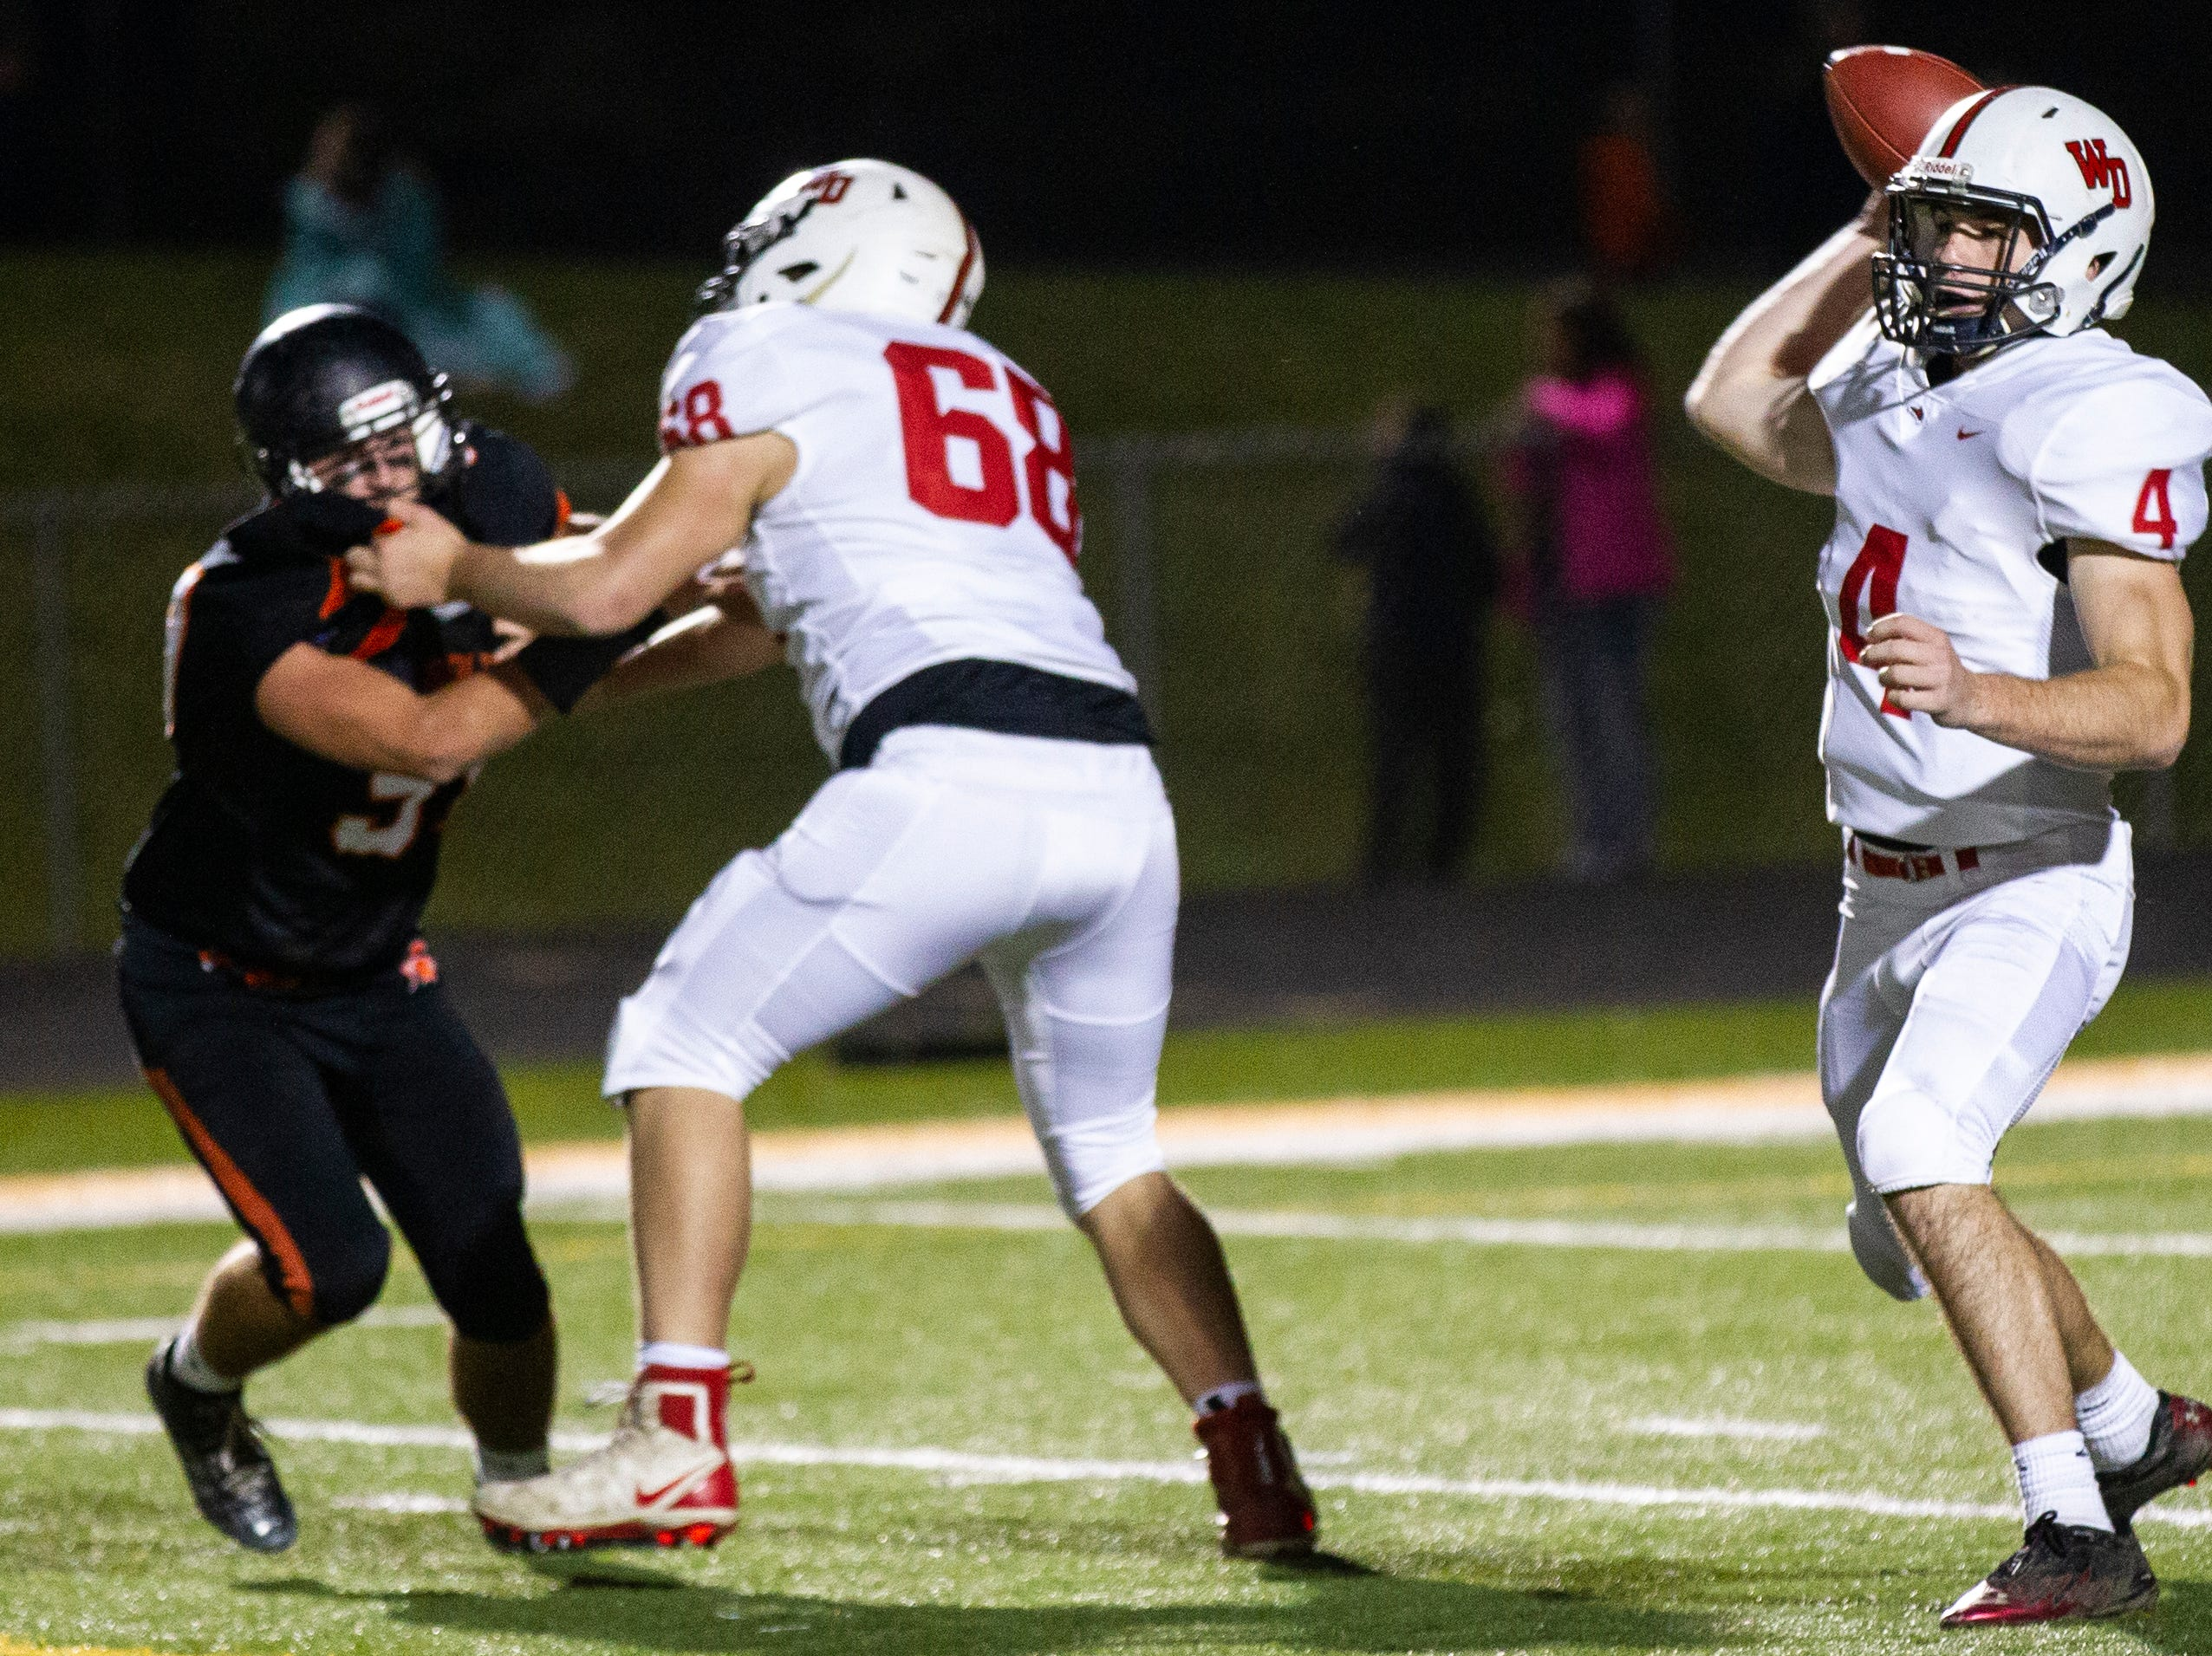 Western Dubuque's Calvin Harris (4) passes while Tim Althaus (68) protects the pocket during a Class 3A varsity first round playoff football game on Friday, Oct. 26, 2018, at Spartan Stadium in Solon, Iowa.